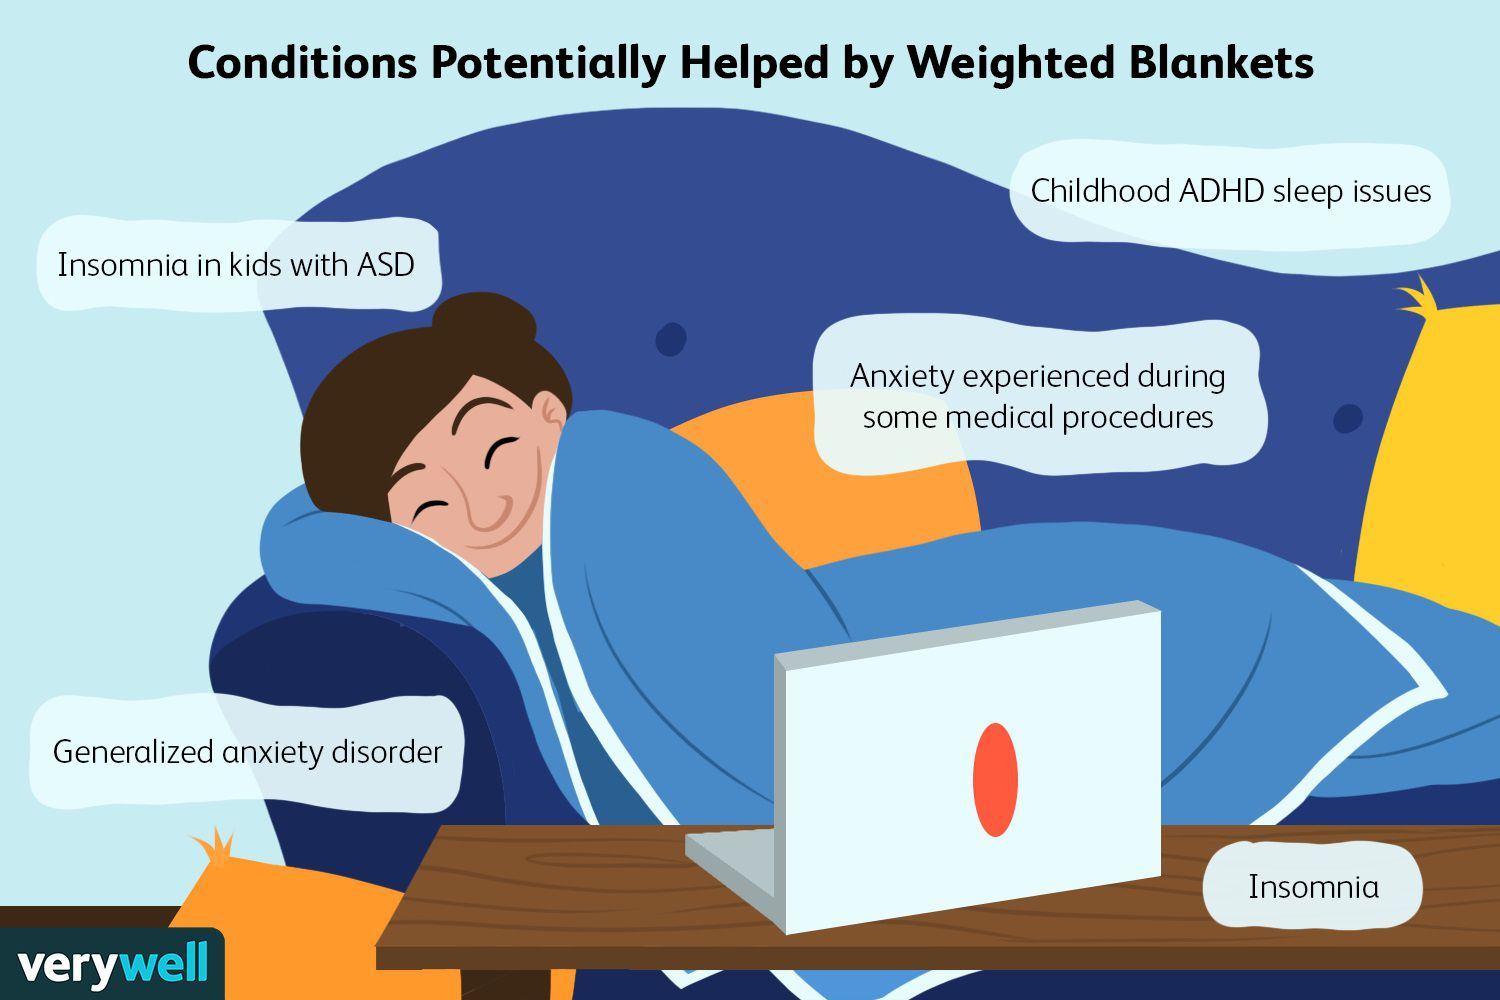 Conditions Potentially Helped by Weighted Blankets